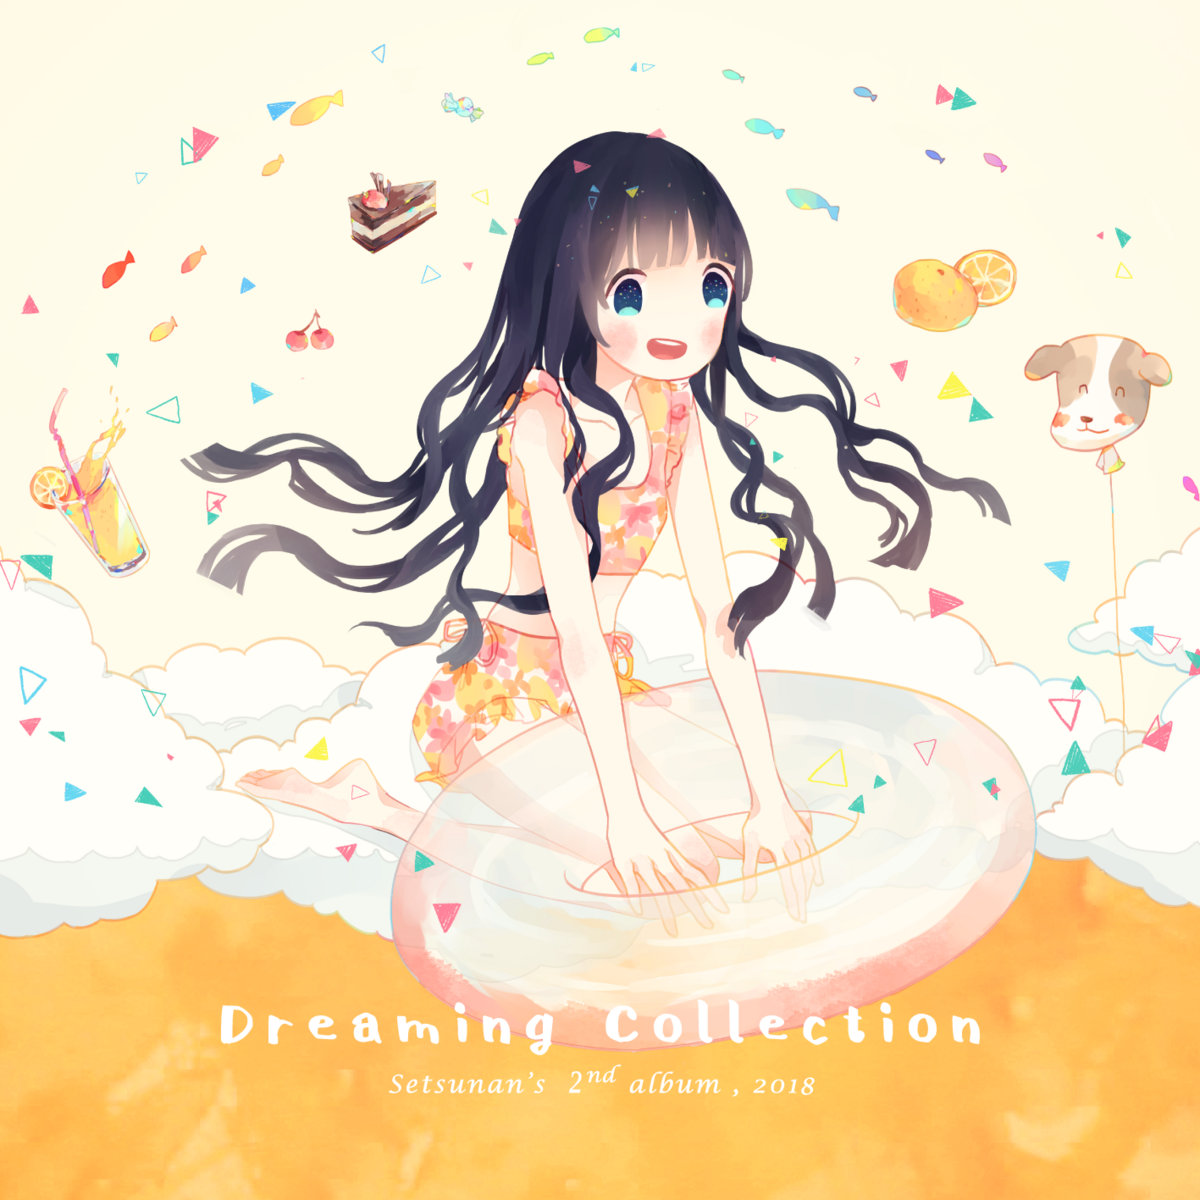 薛南 2nd album dreaming collection setsunann